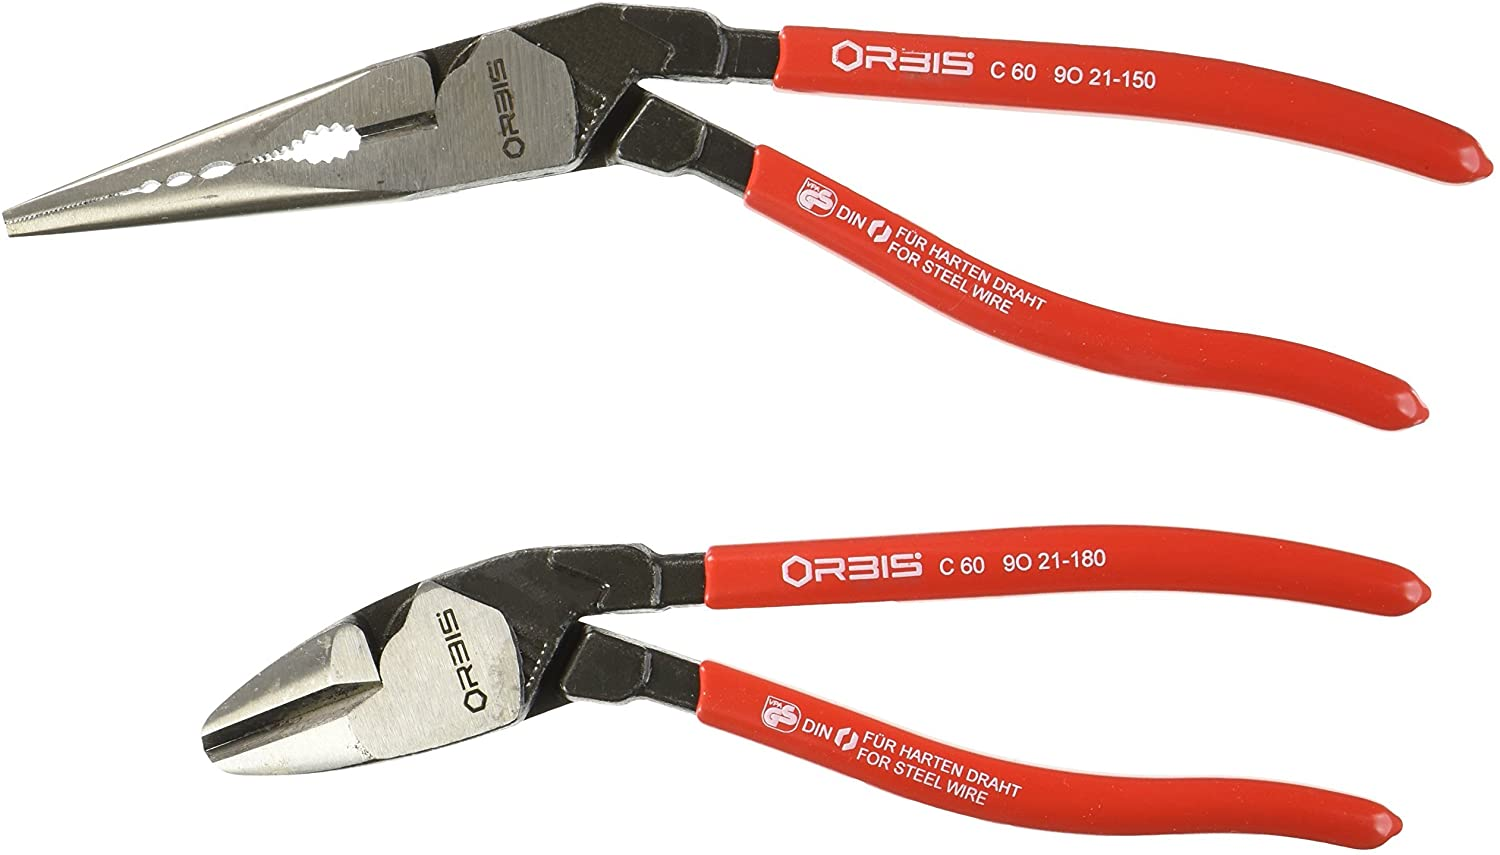 Grip On KNP9K008097US Pliers Set (Orbis 2-Piece Angled)